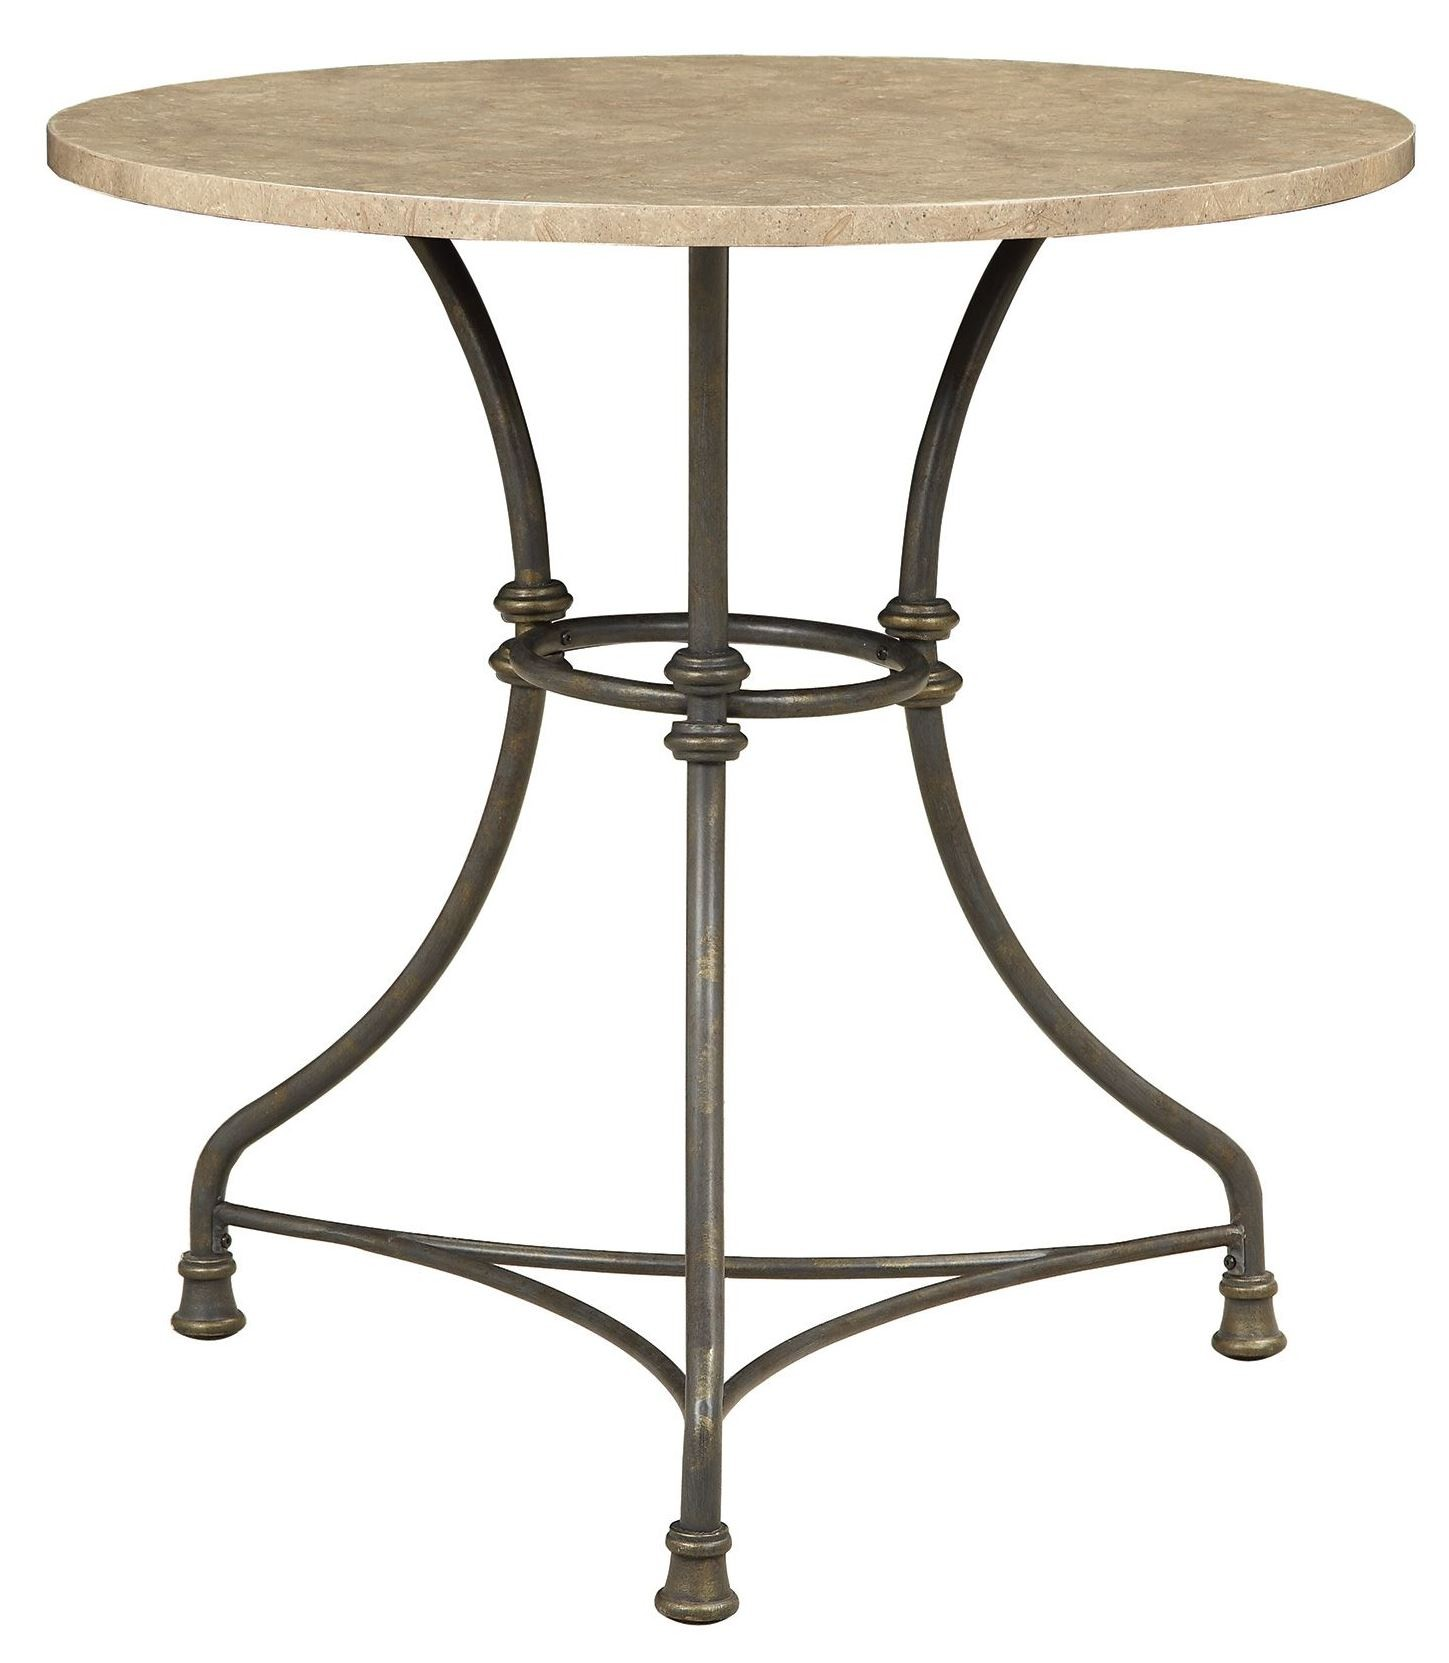 Counter Height Dining Tables: Lahner Round Counter Height Dining Table From Coaster